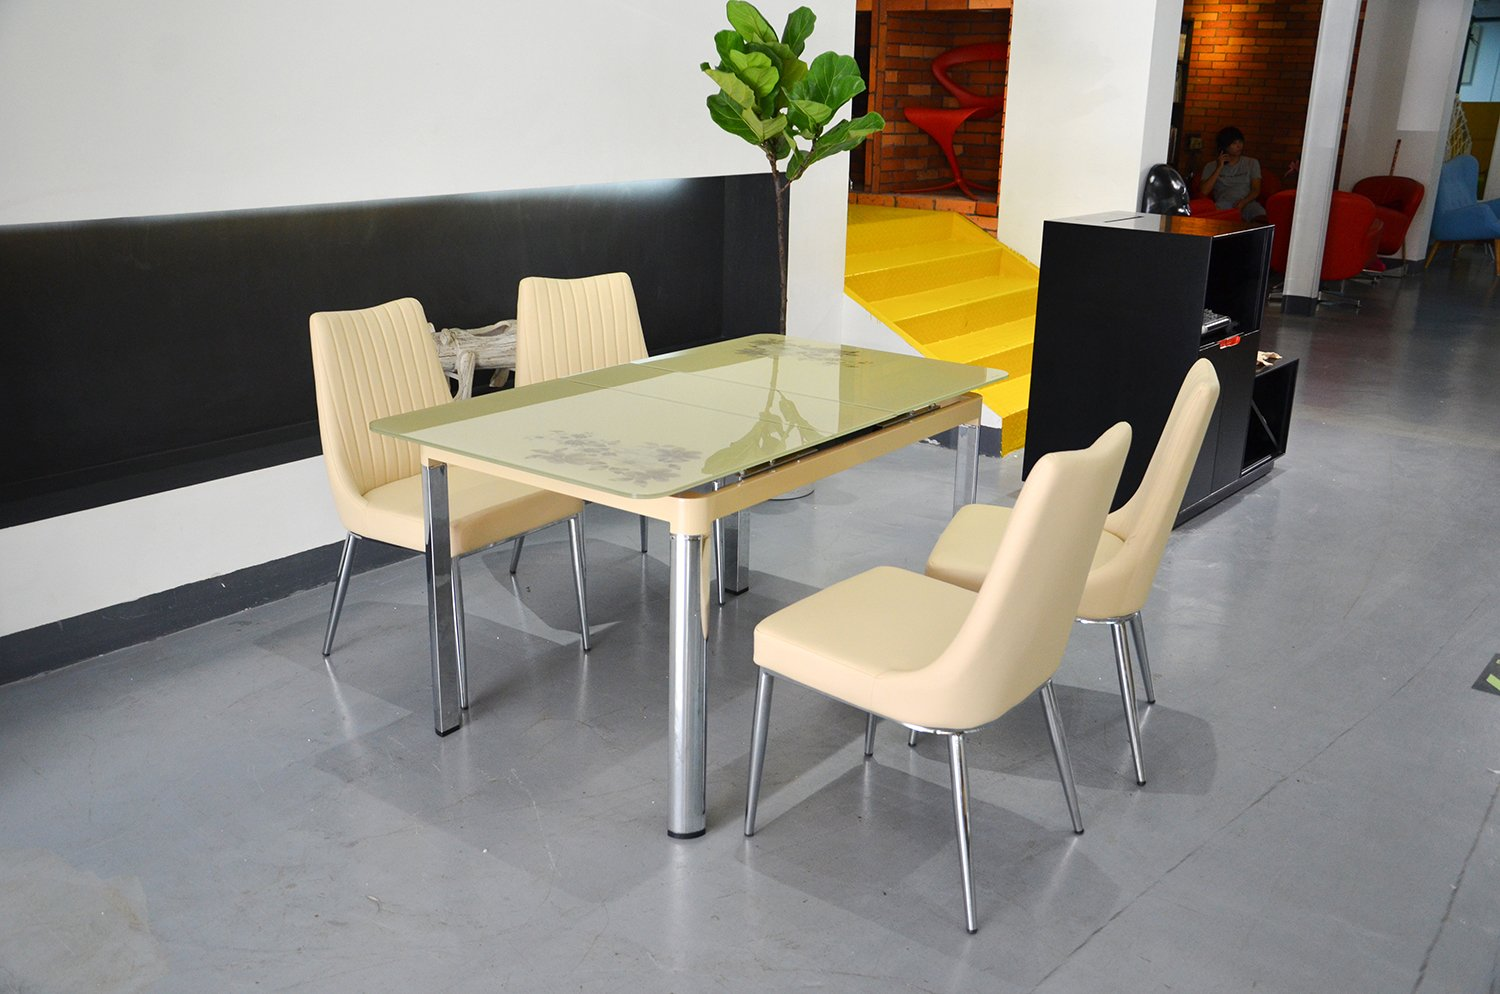 Bellona 5 Piece Extendable Dining Set Table WF330 (CAPPUCCINO)